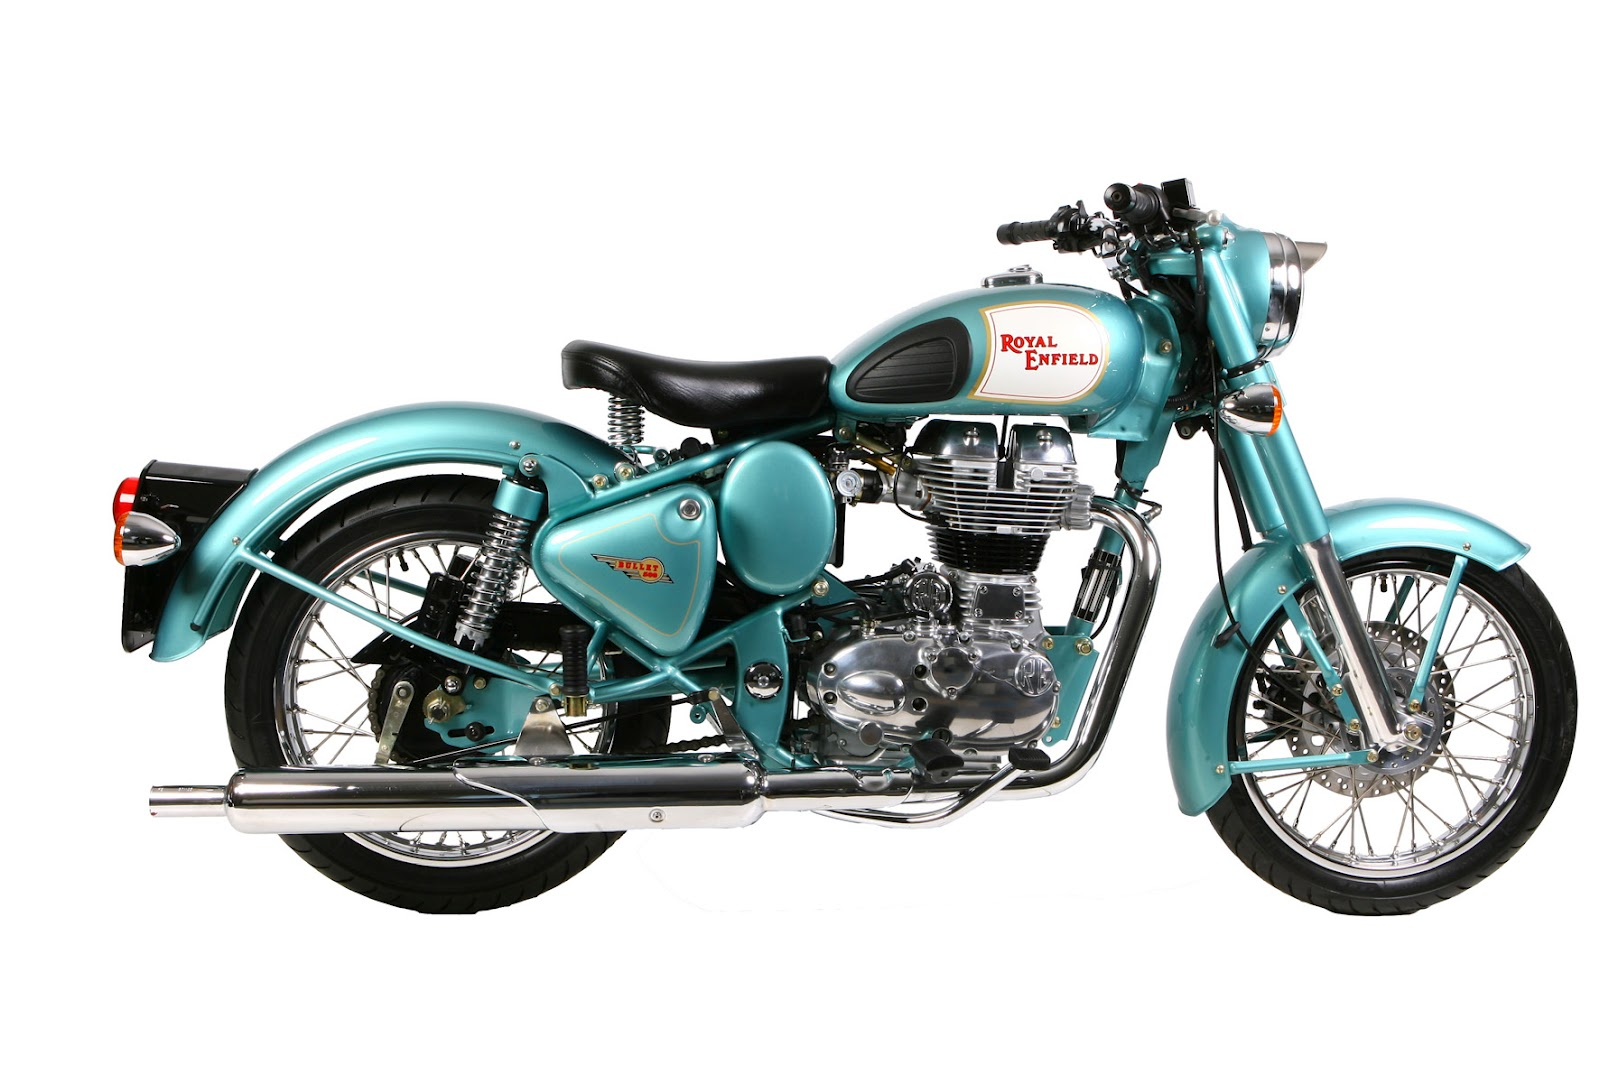 Enfield Bullet 350 Classic 2006 #11